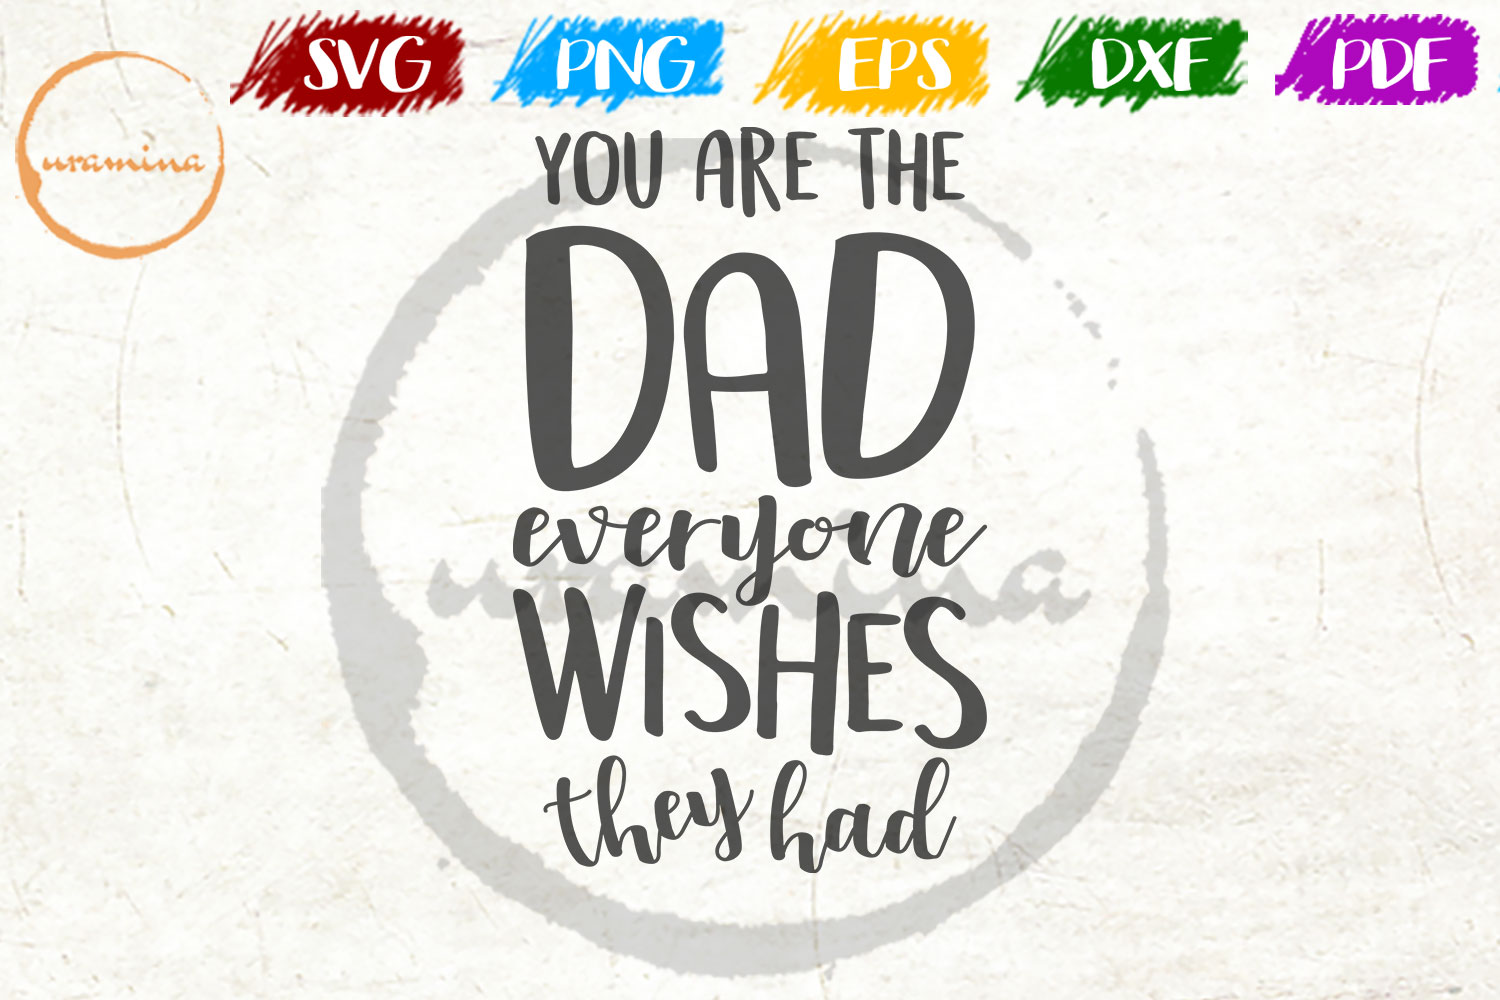 Download Free You Are The Dad Everyone Wishes They Had Graphic By Uramina for Cricut Explore, Silhouette and other cutting machines.